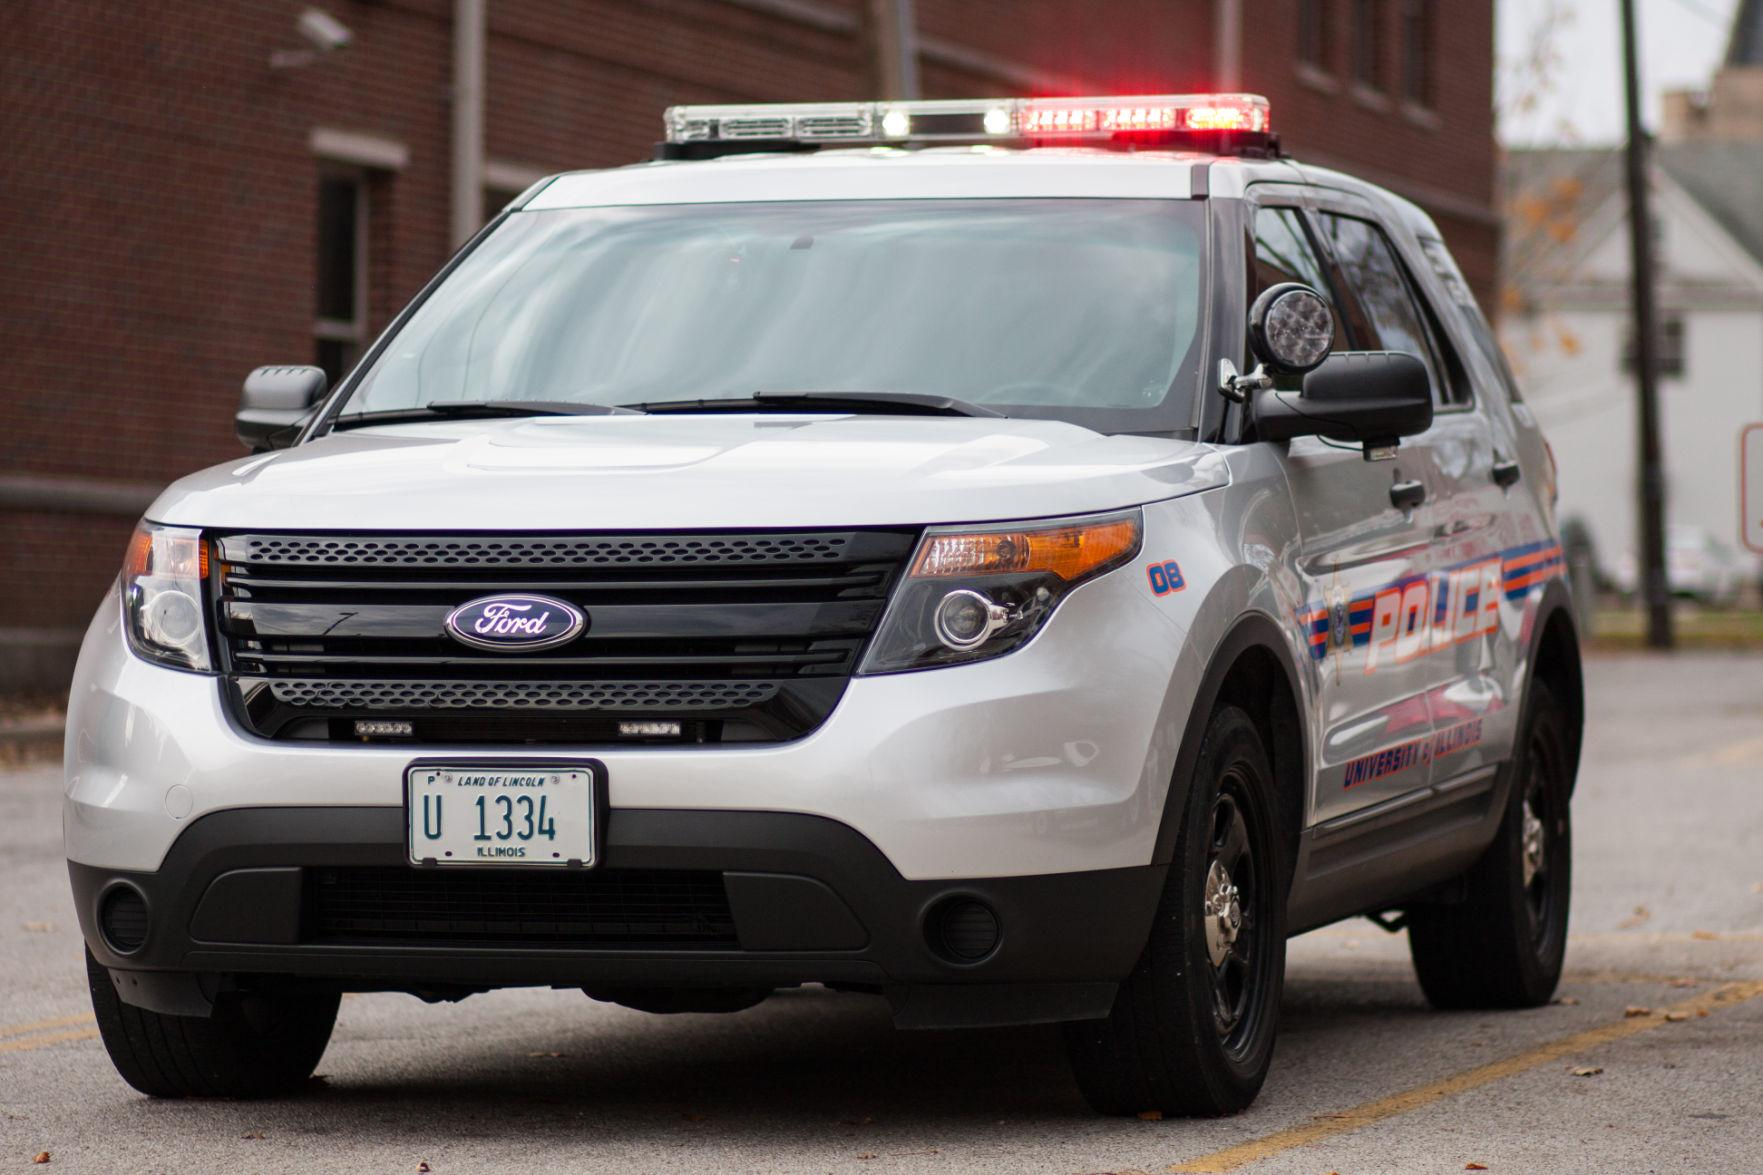 A UIPD police car sits in the parking lot at the Division of Public Safety building on Monday.